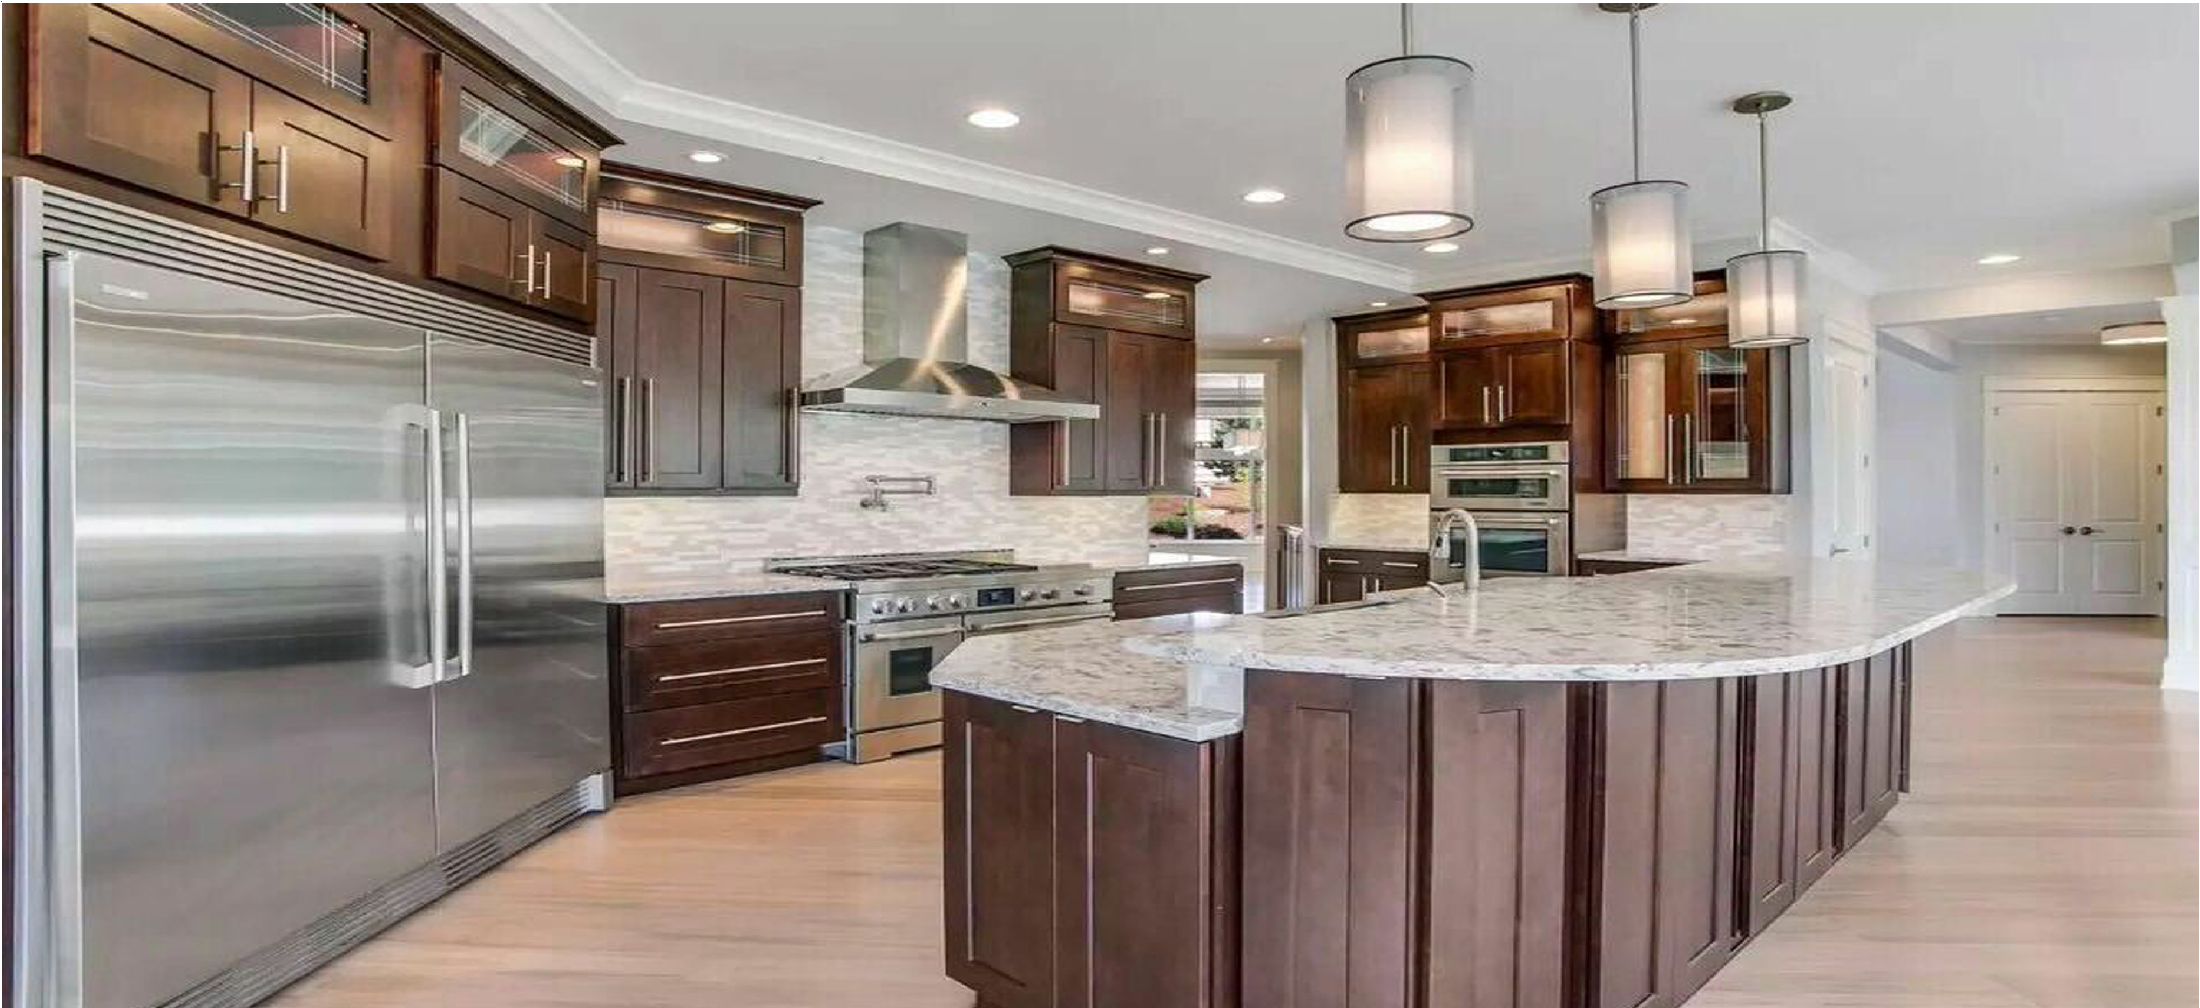 High Quality Cabinets & Granite Countertops | Lincoln, NE on What Color Granite Goes With Maple Cabinets  id=77547